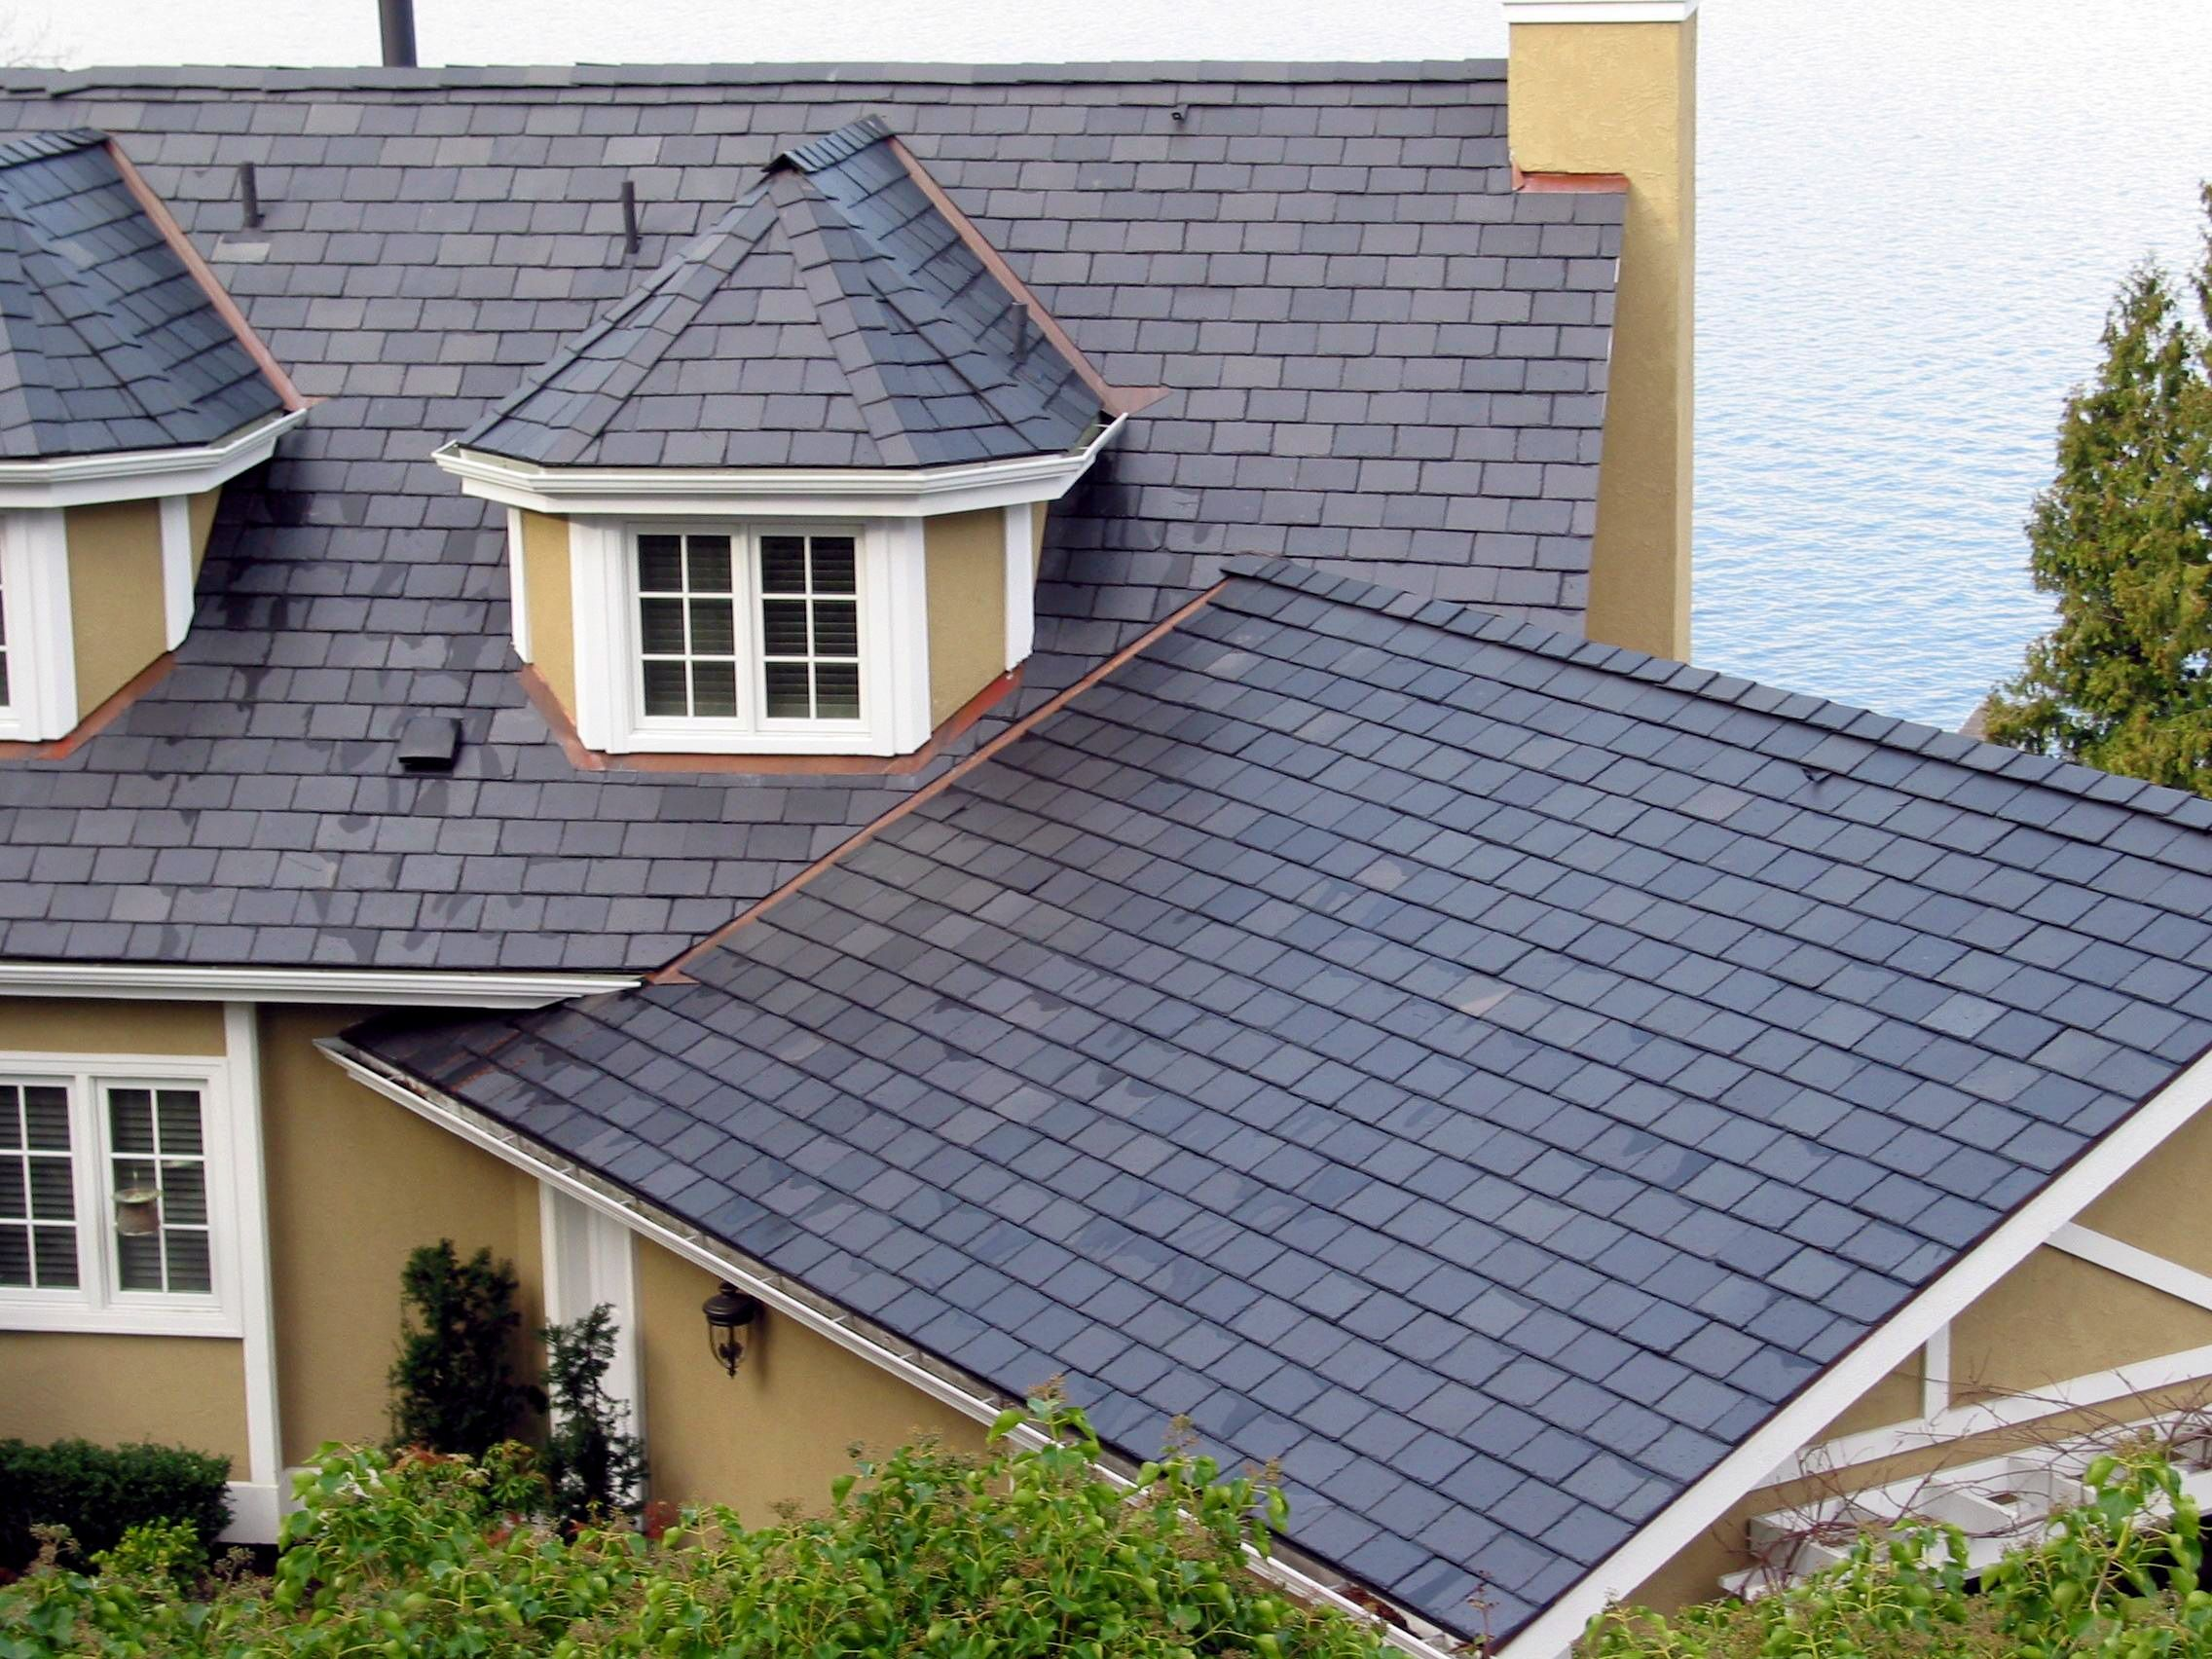 Gallery Sharp Roofingsharp Roofing Roofing Roofing Services Roofing Systems